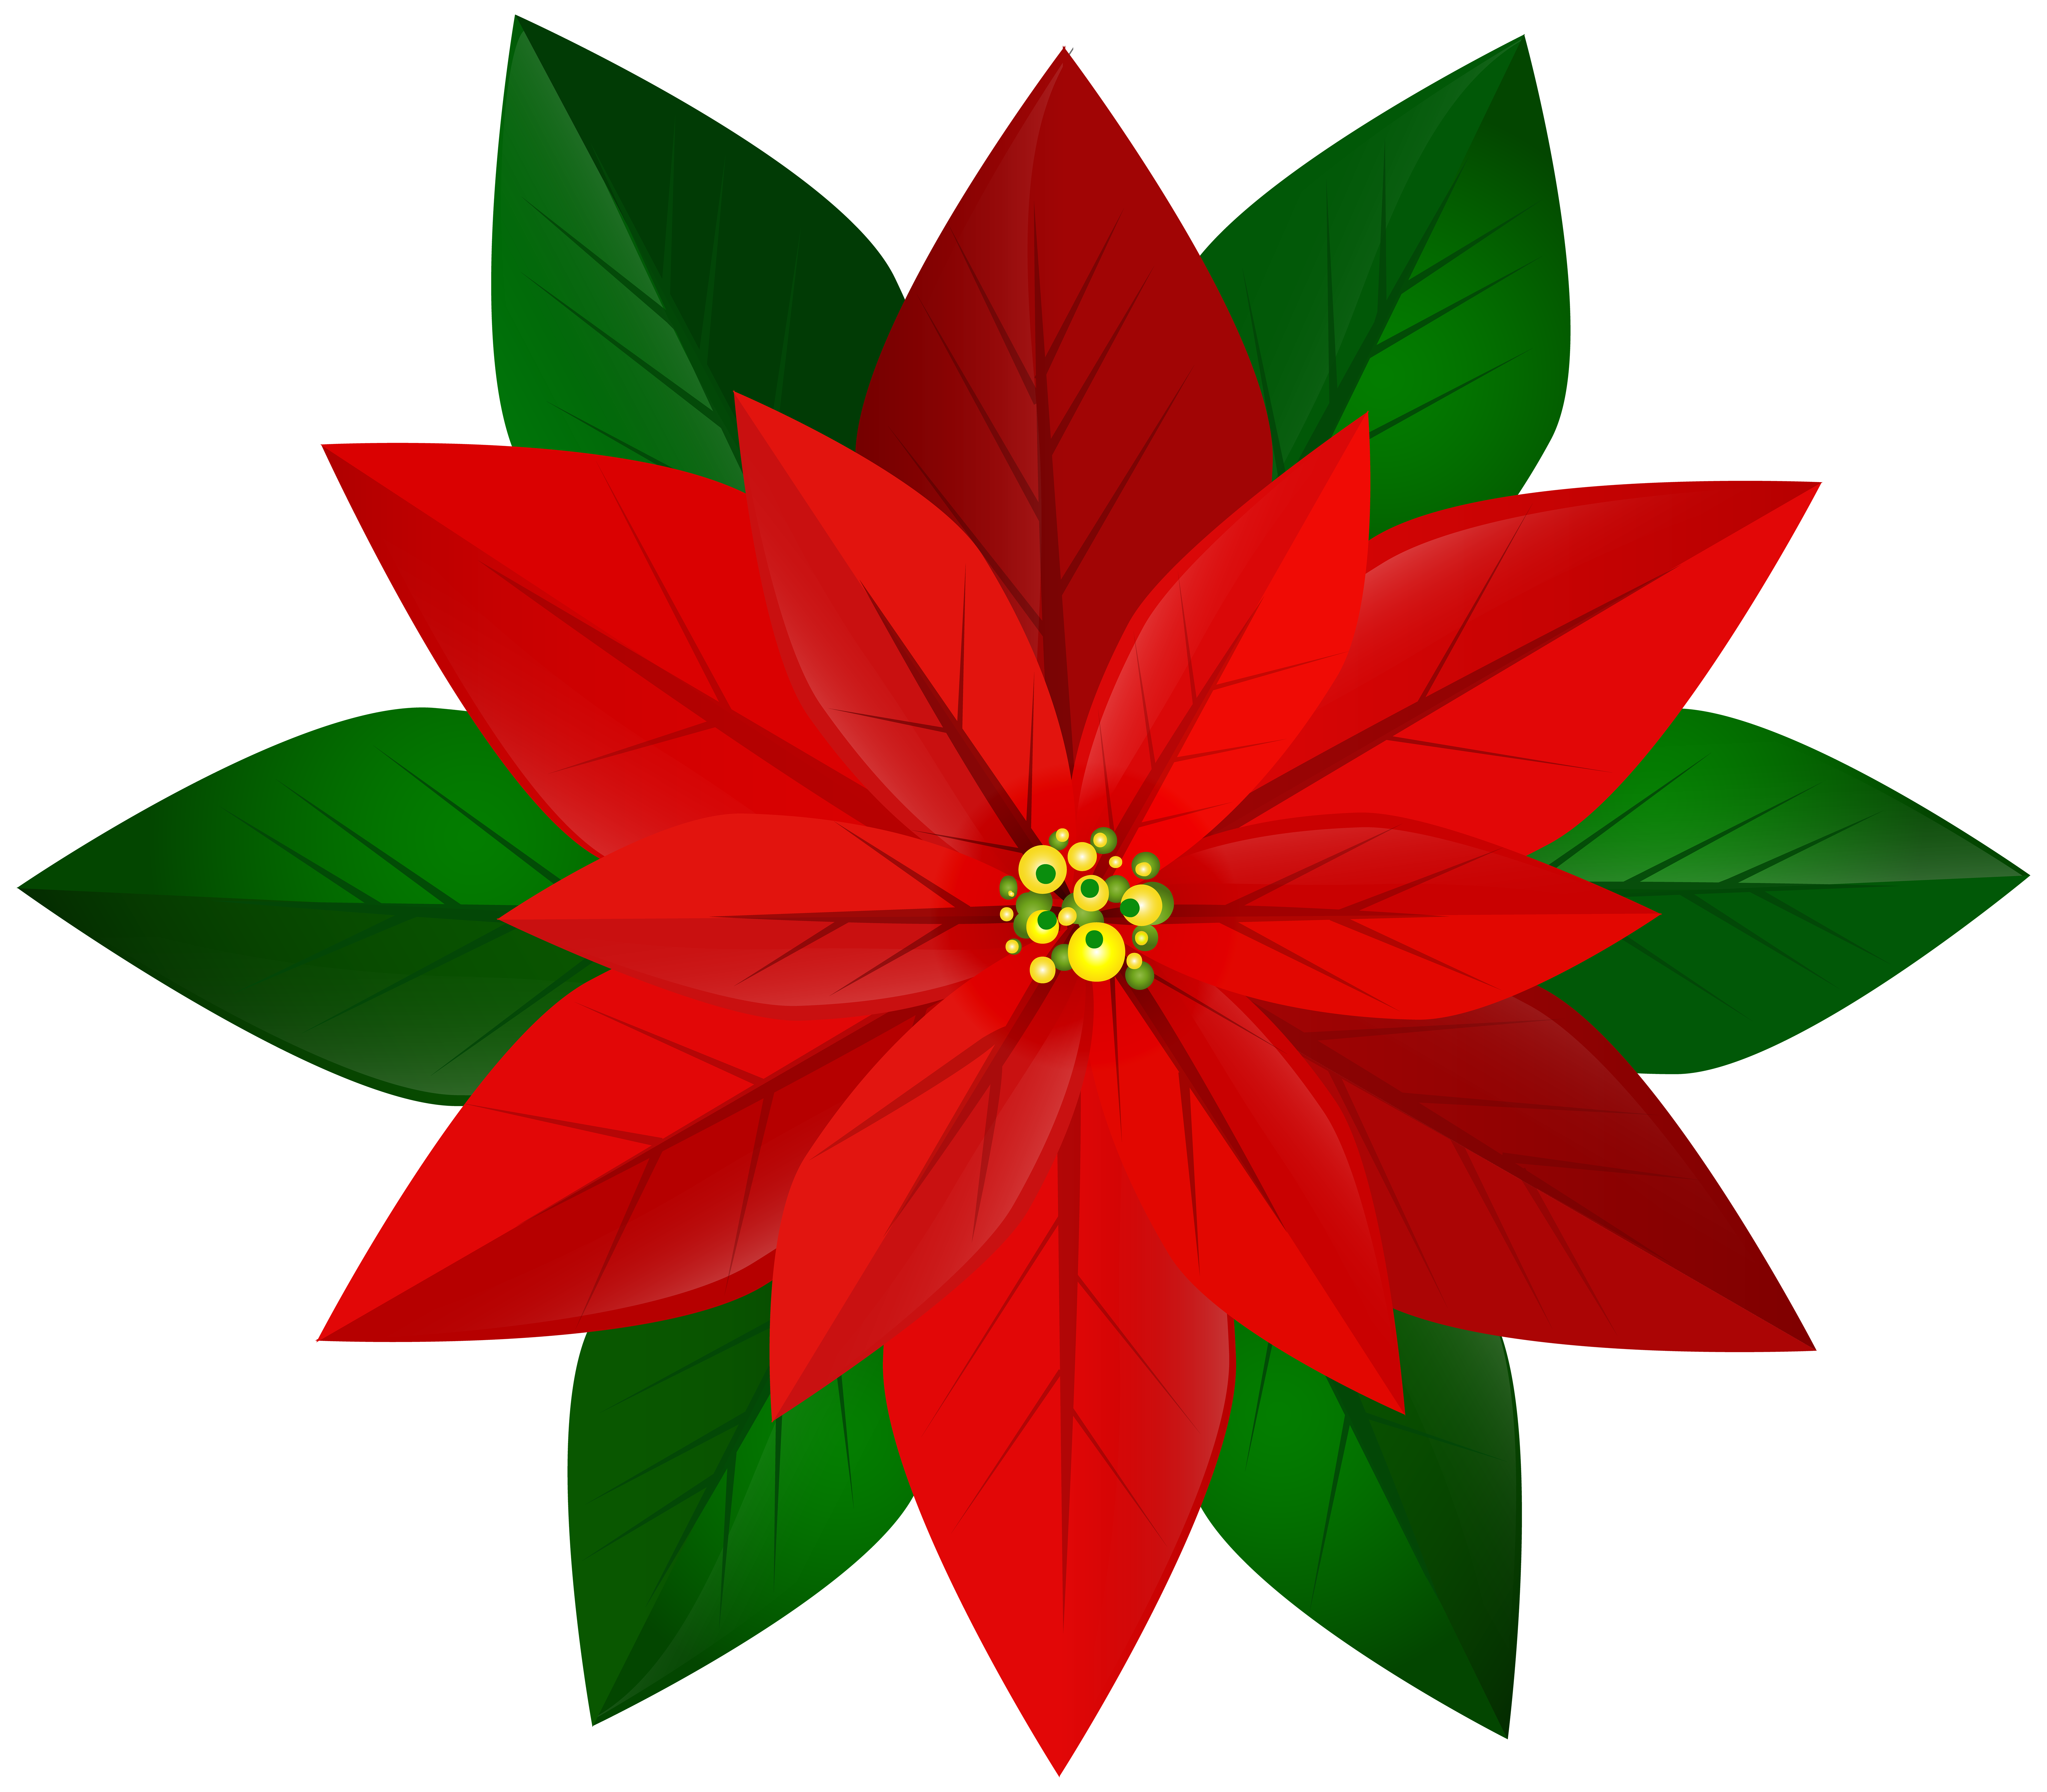 Christmas Red Poinsettia PNG Clip Art Image.